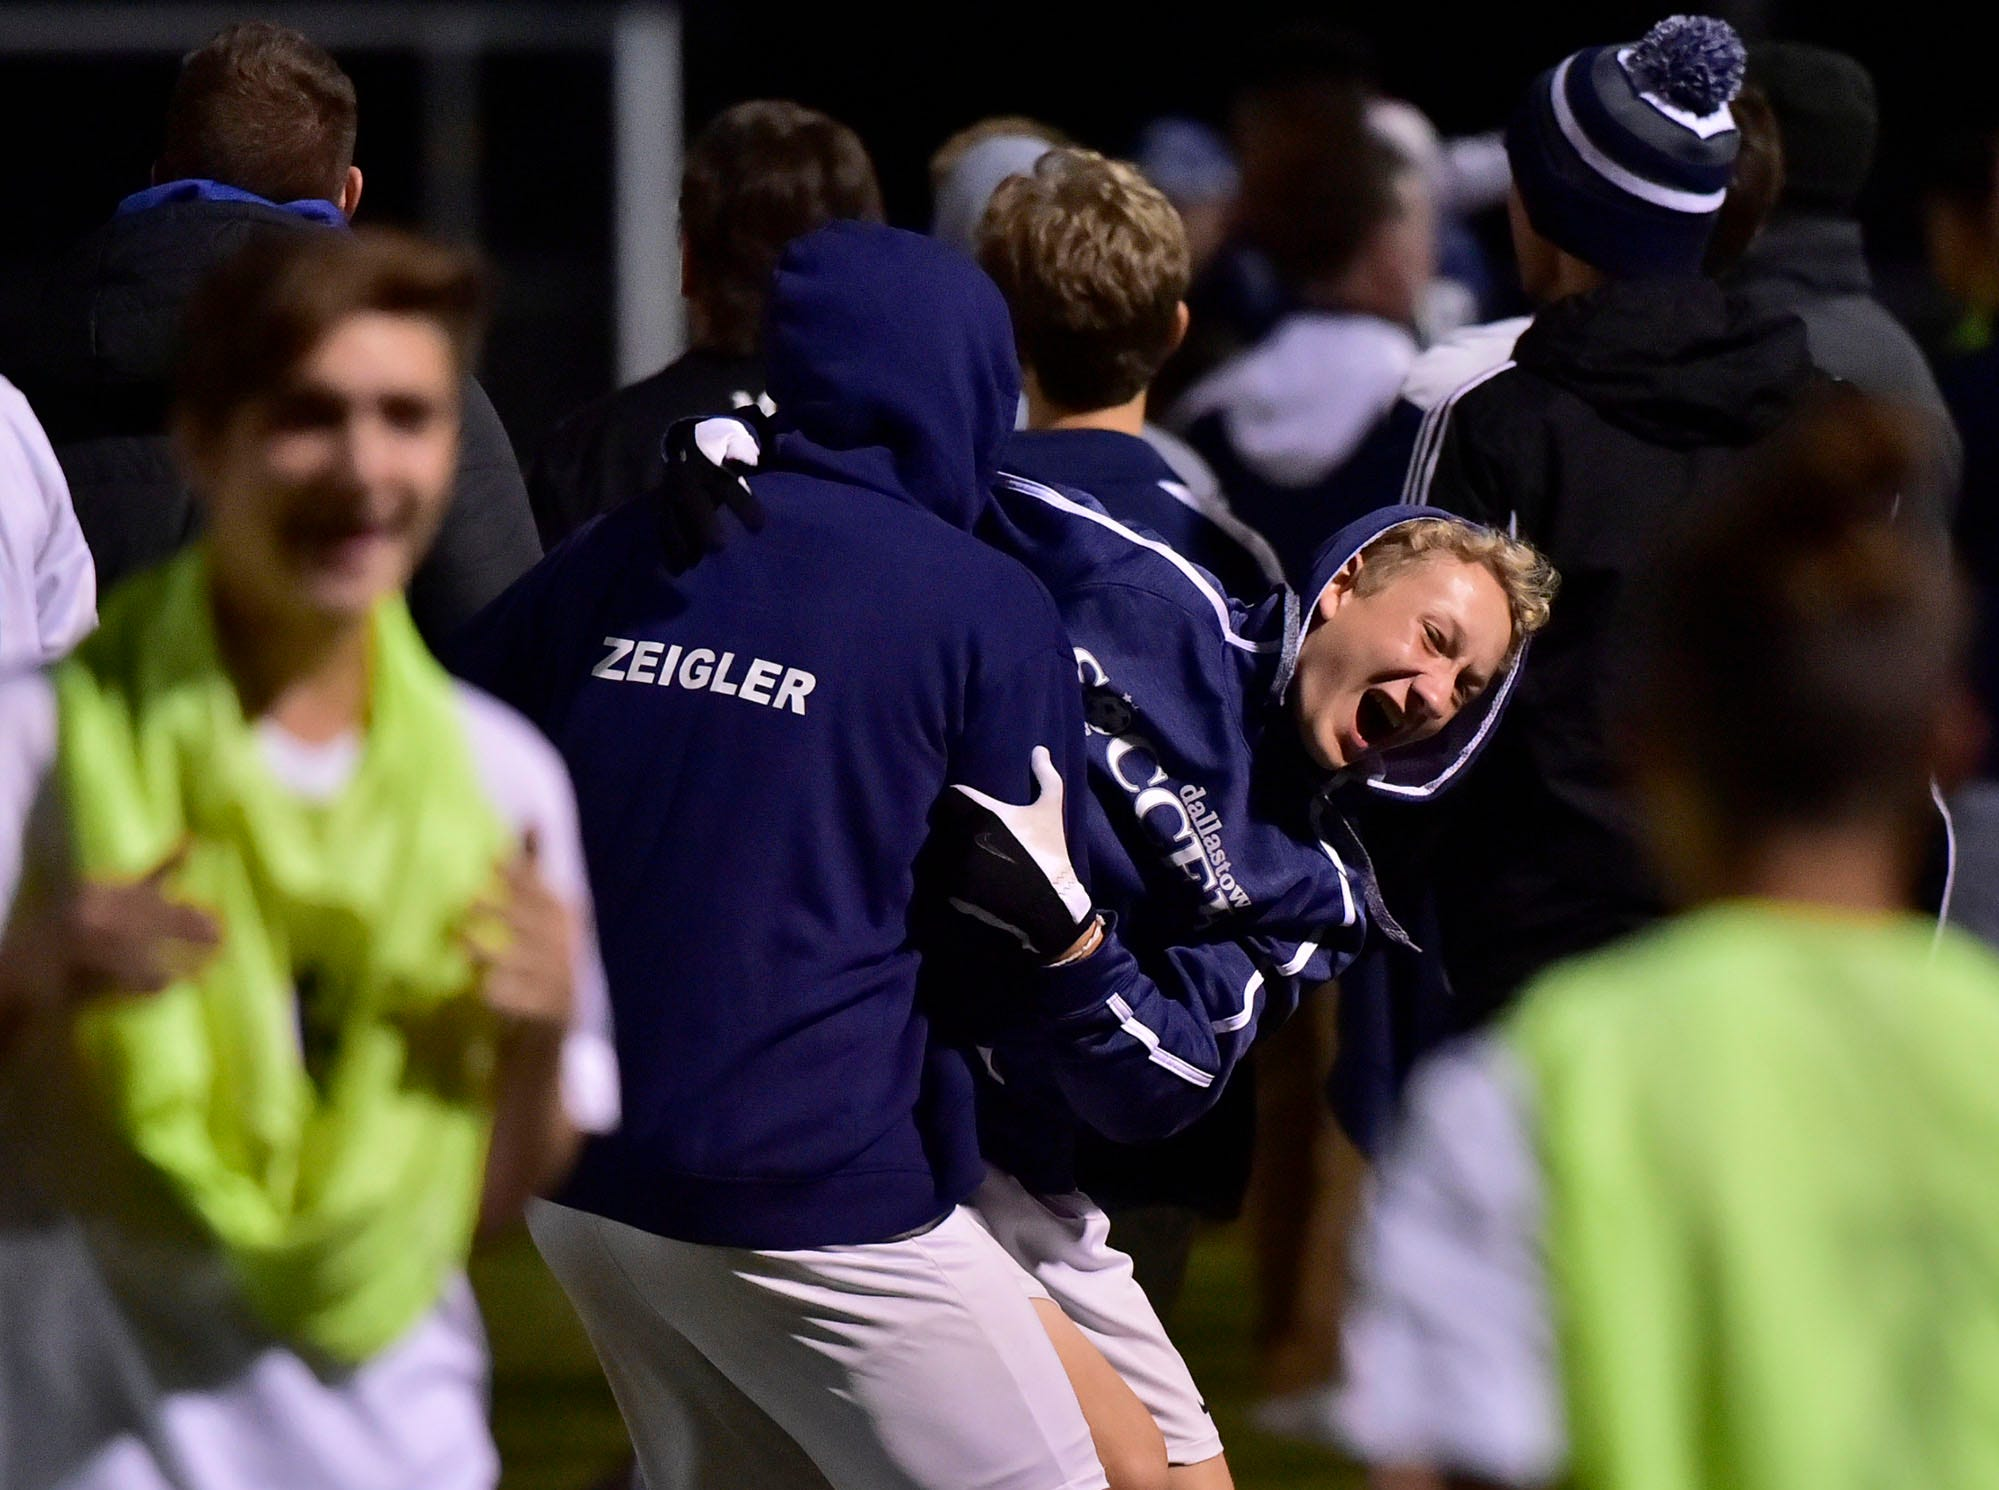 Chambersburg teammates celebrate after a score. Chambersburg lost a first round D3 soccer match to Dallastown 2-1 on Tuesday, Oct. 23, 2018.